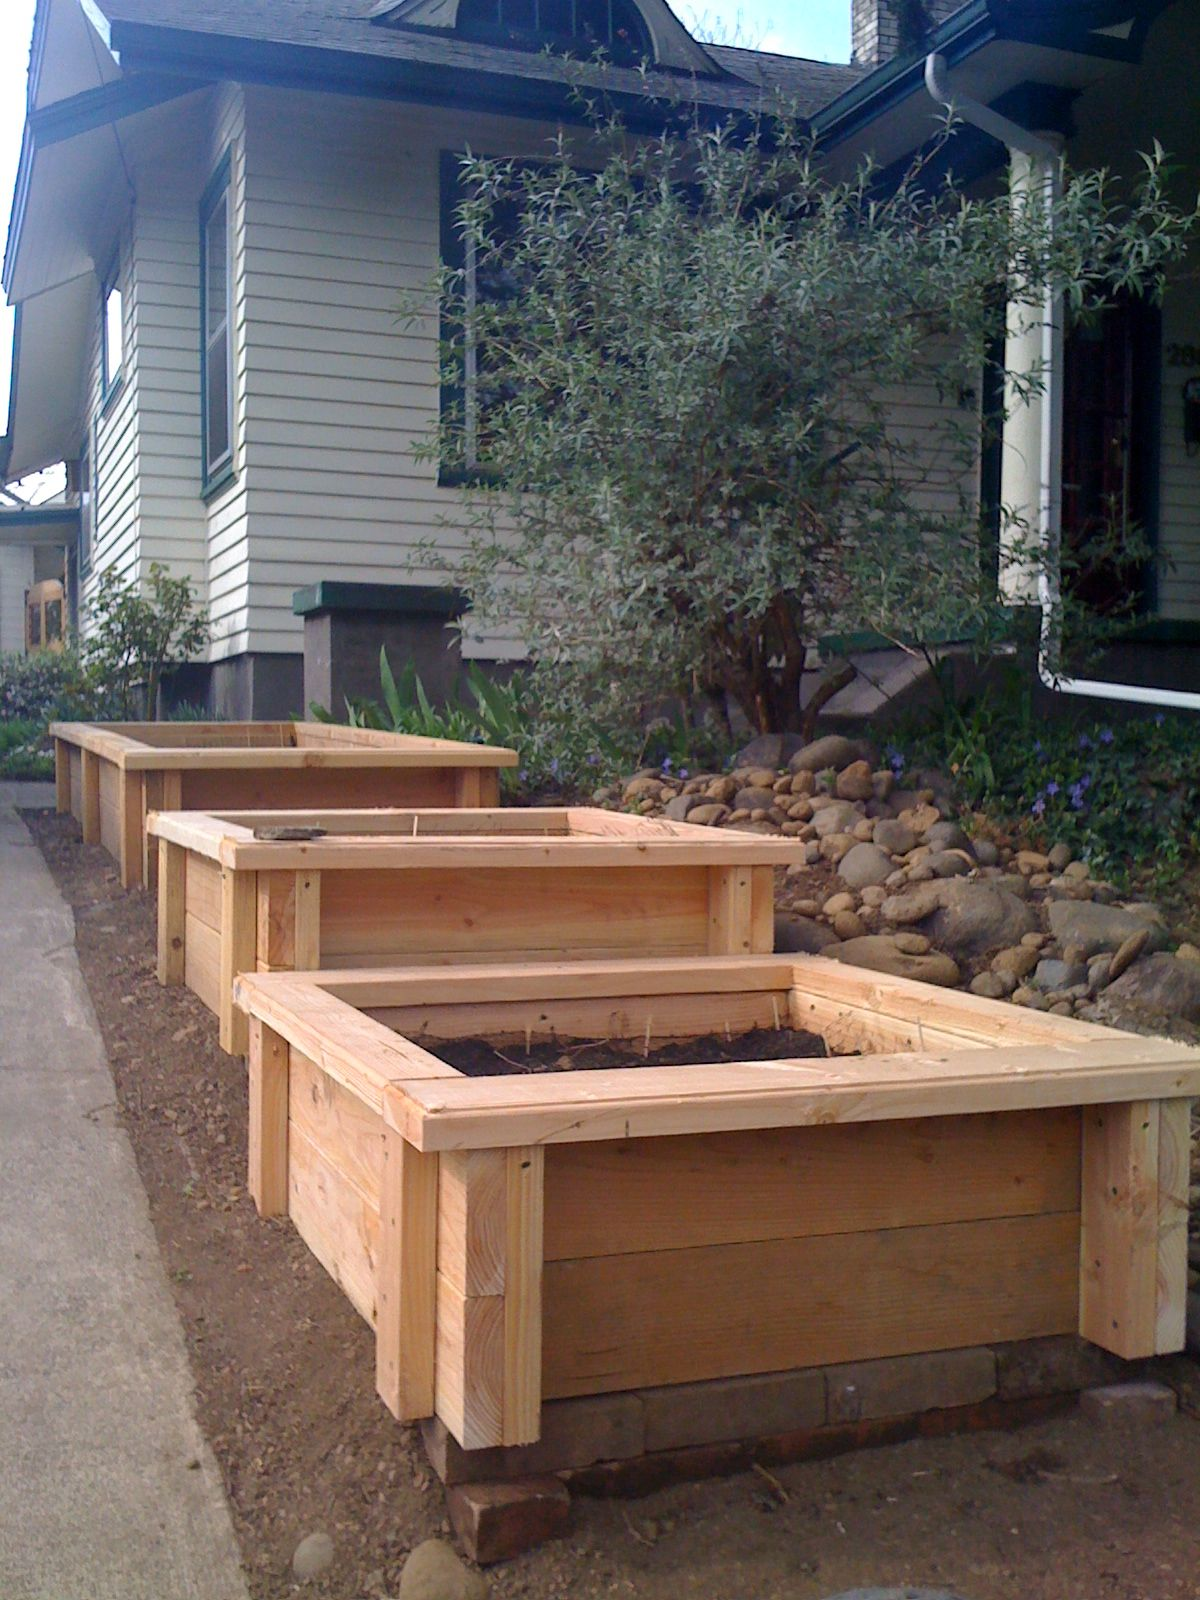 17 Best images about Wood Planter Tree Box on Pinterest Planters